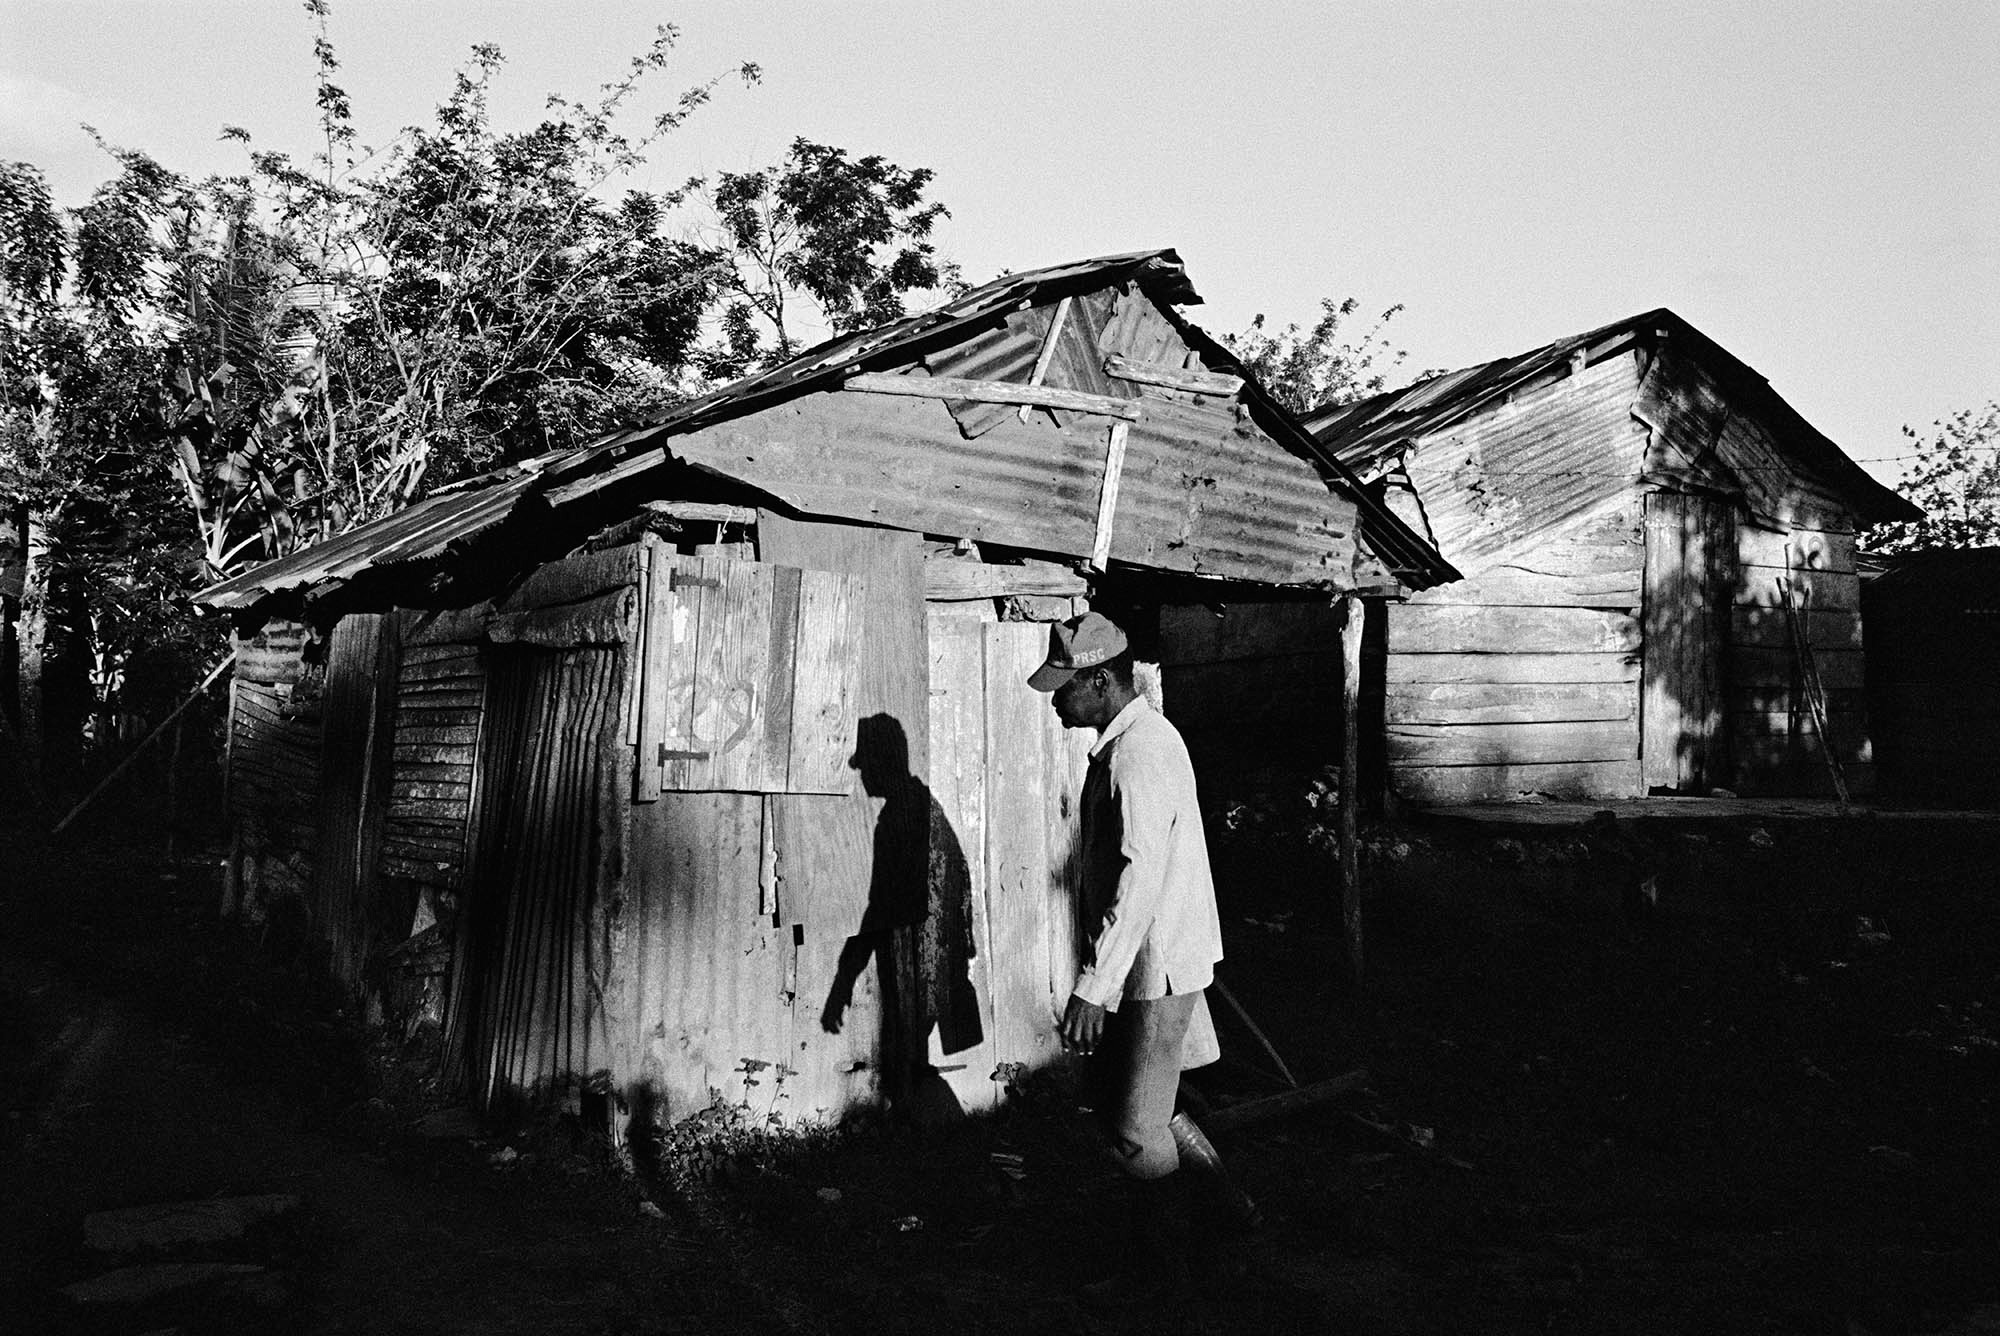 Deep rooted discrimination against ethnic Haitians in the Dominican Republic have left tens of thousands stateless in the county. Large number of Dominico-Haitians live in squalid slum-like settlements throughout the country called 'bateyes'.